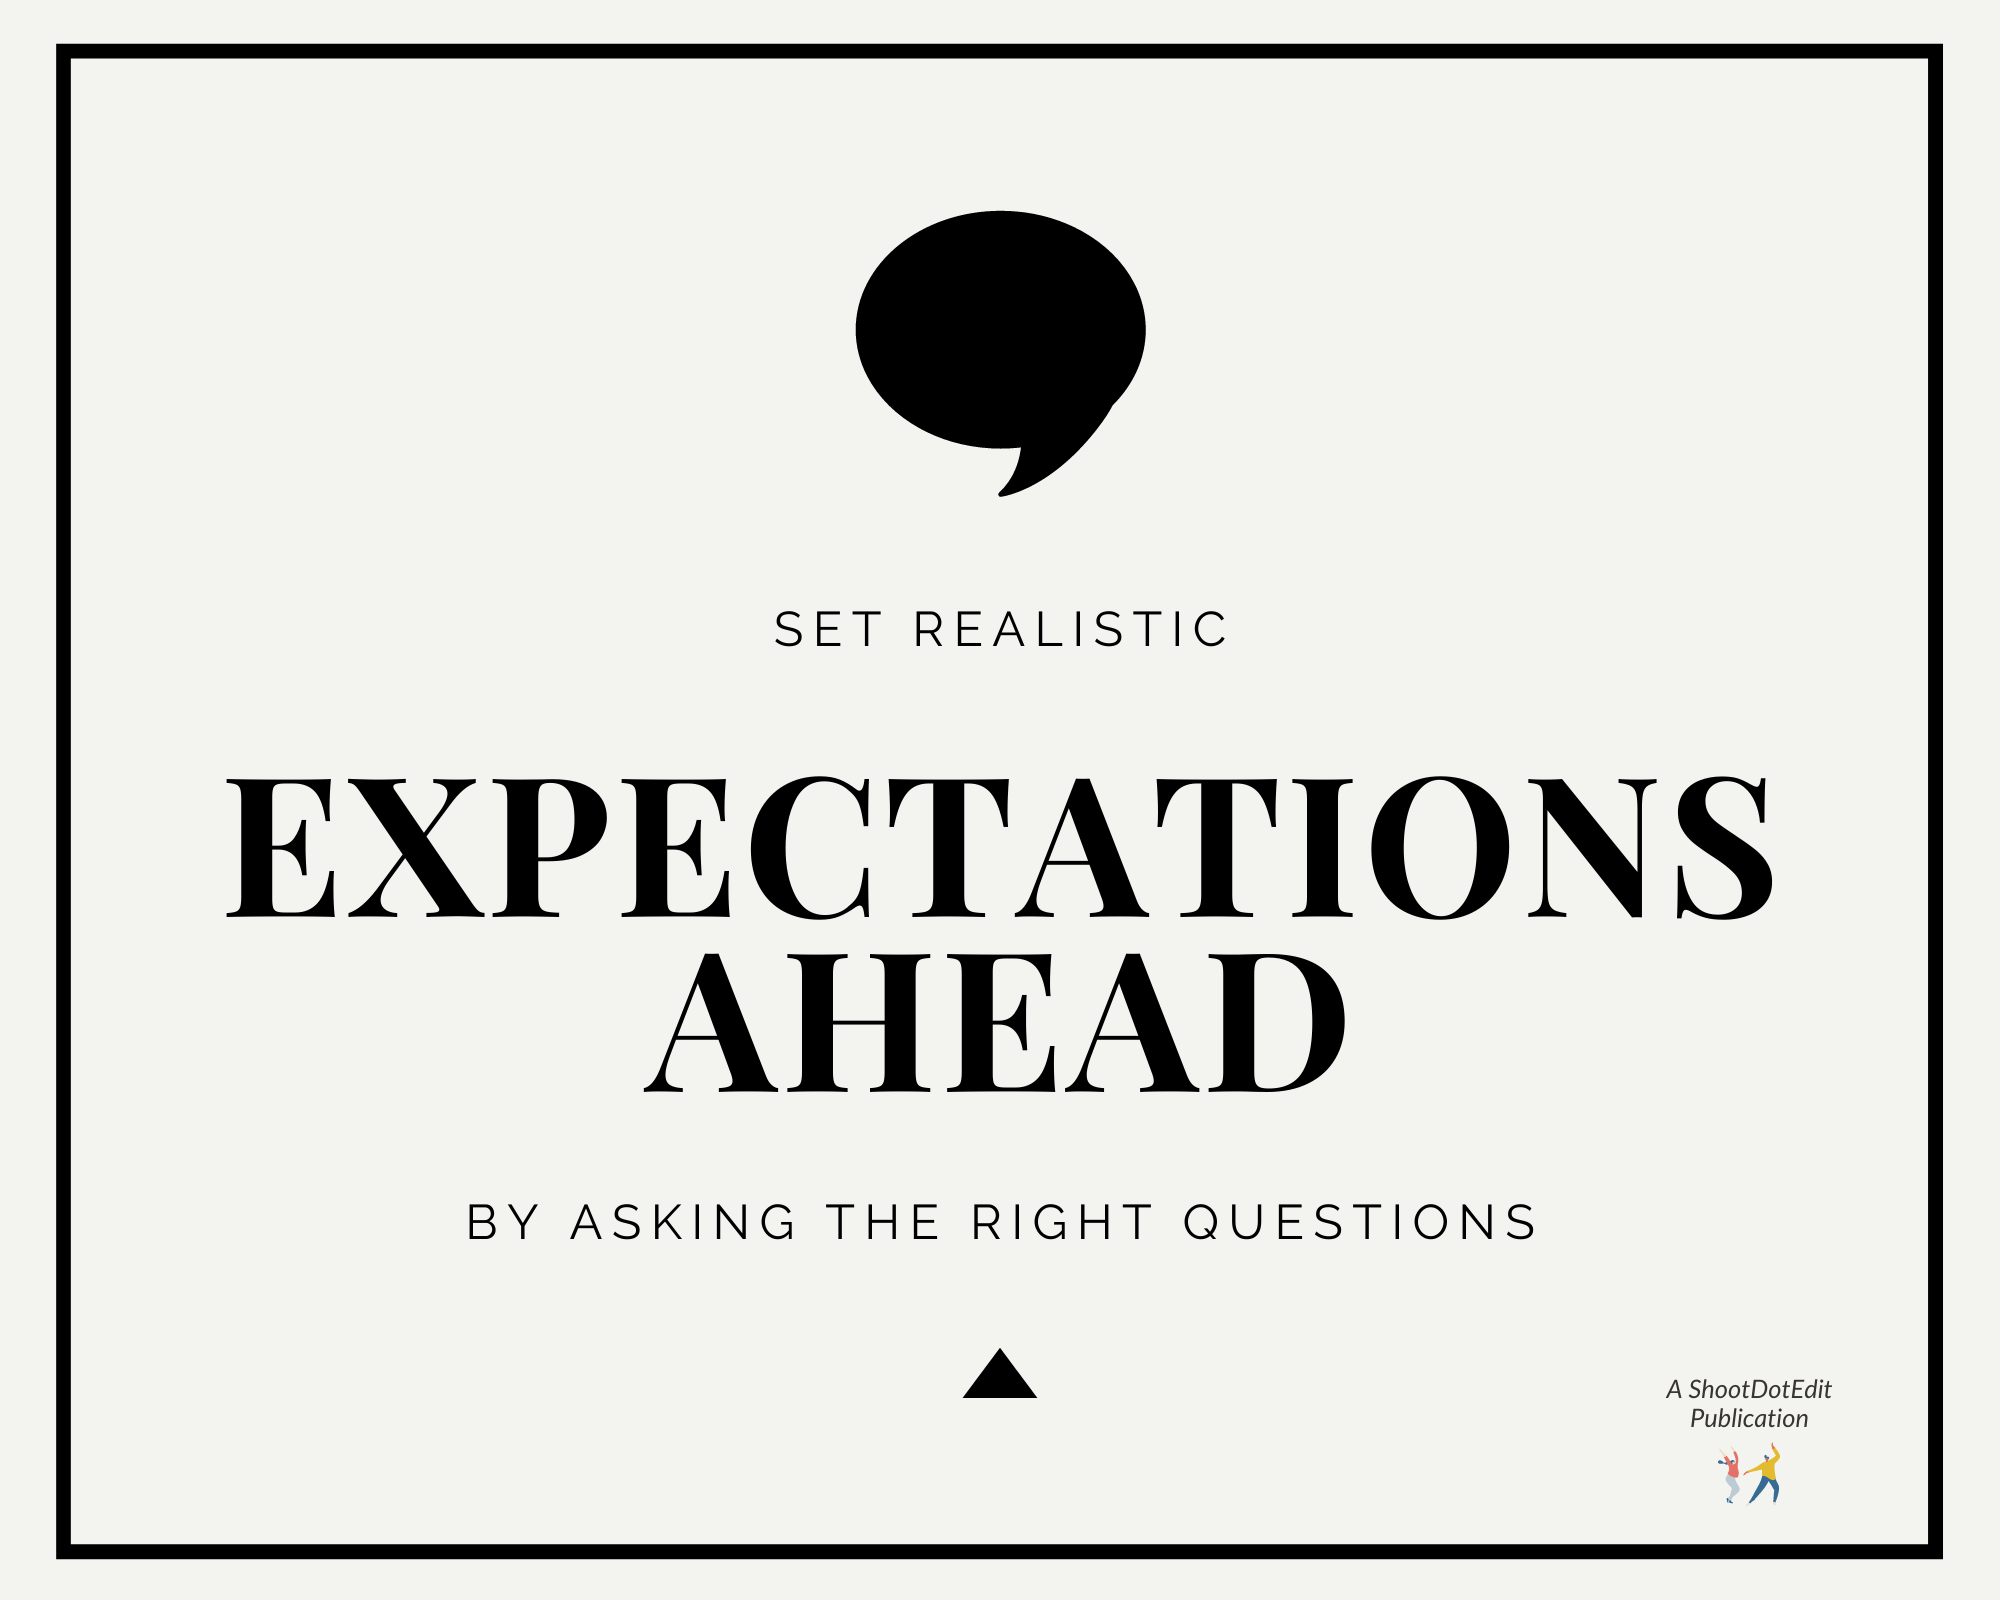 Infographic stating set realistic expectations ahead by asking the right questions